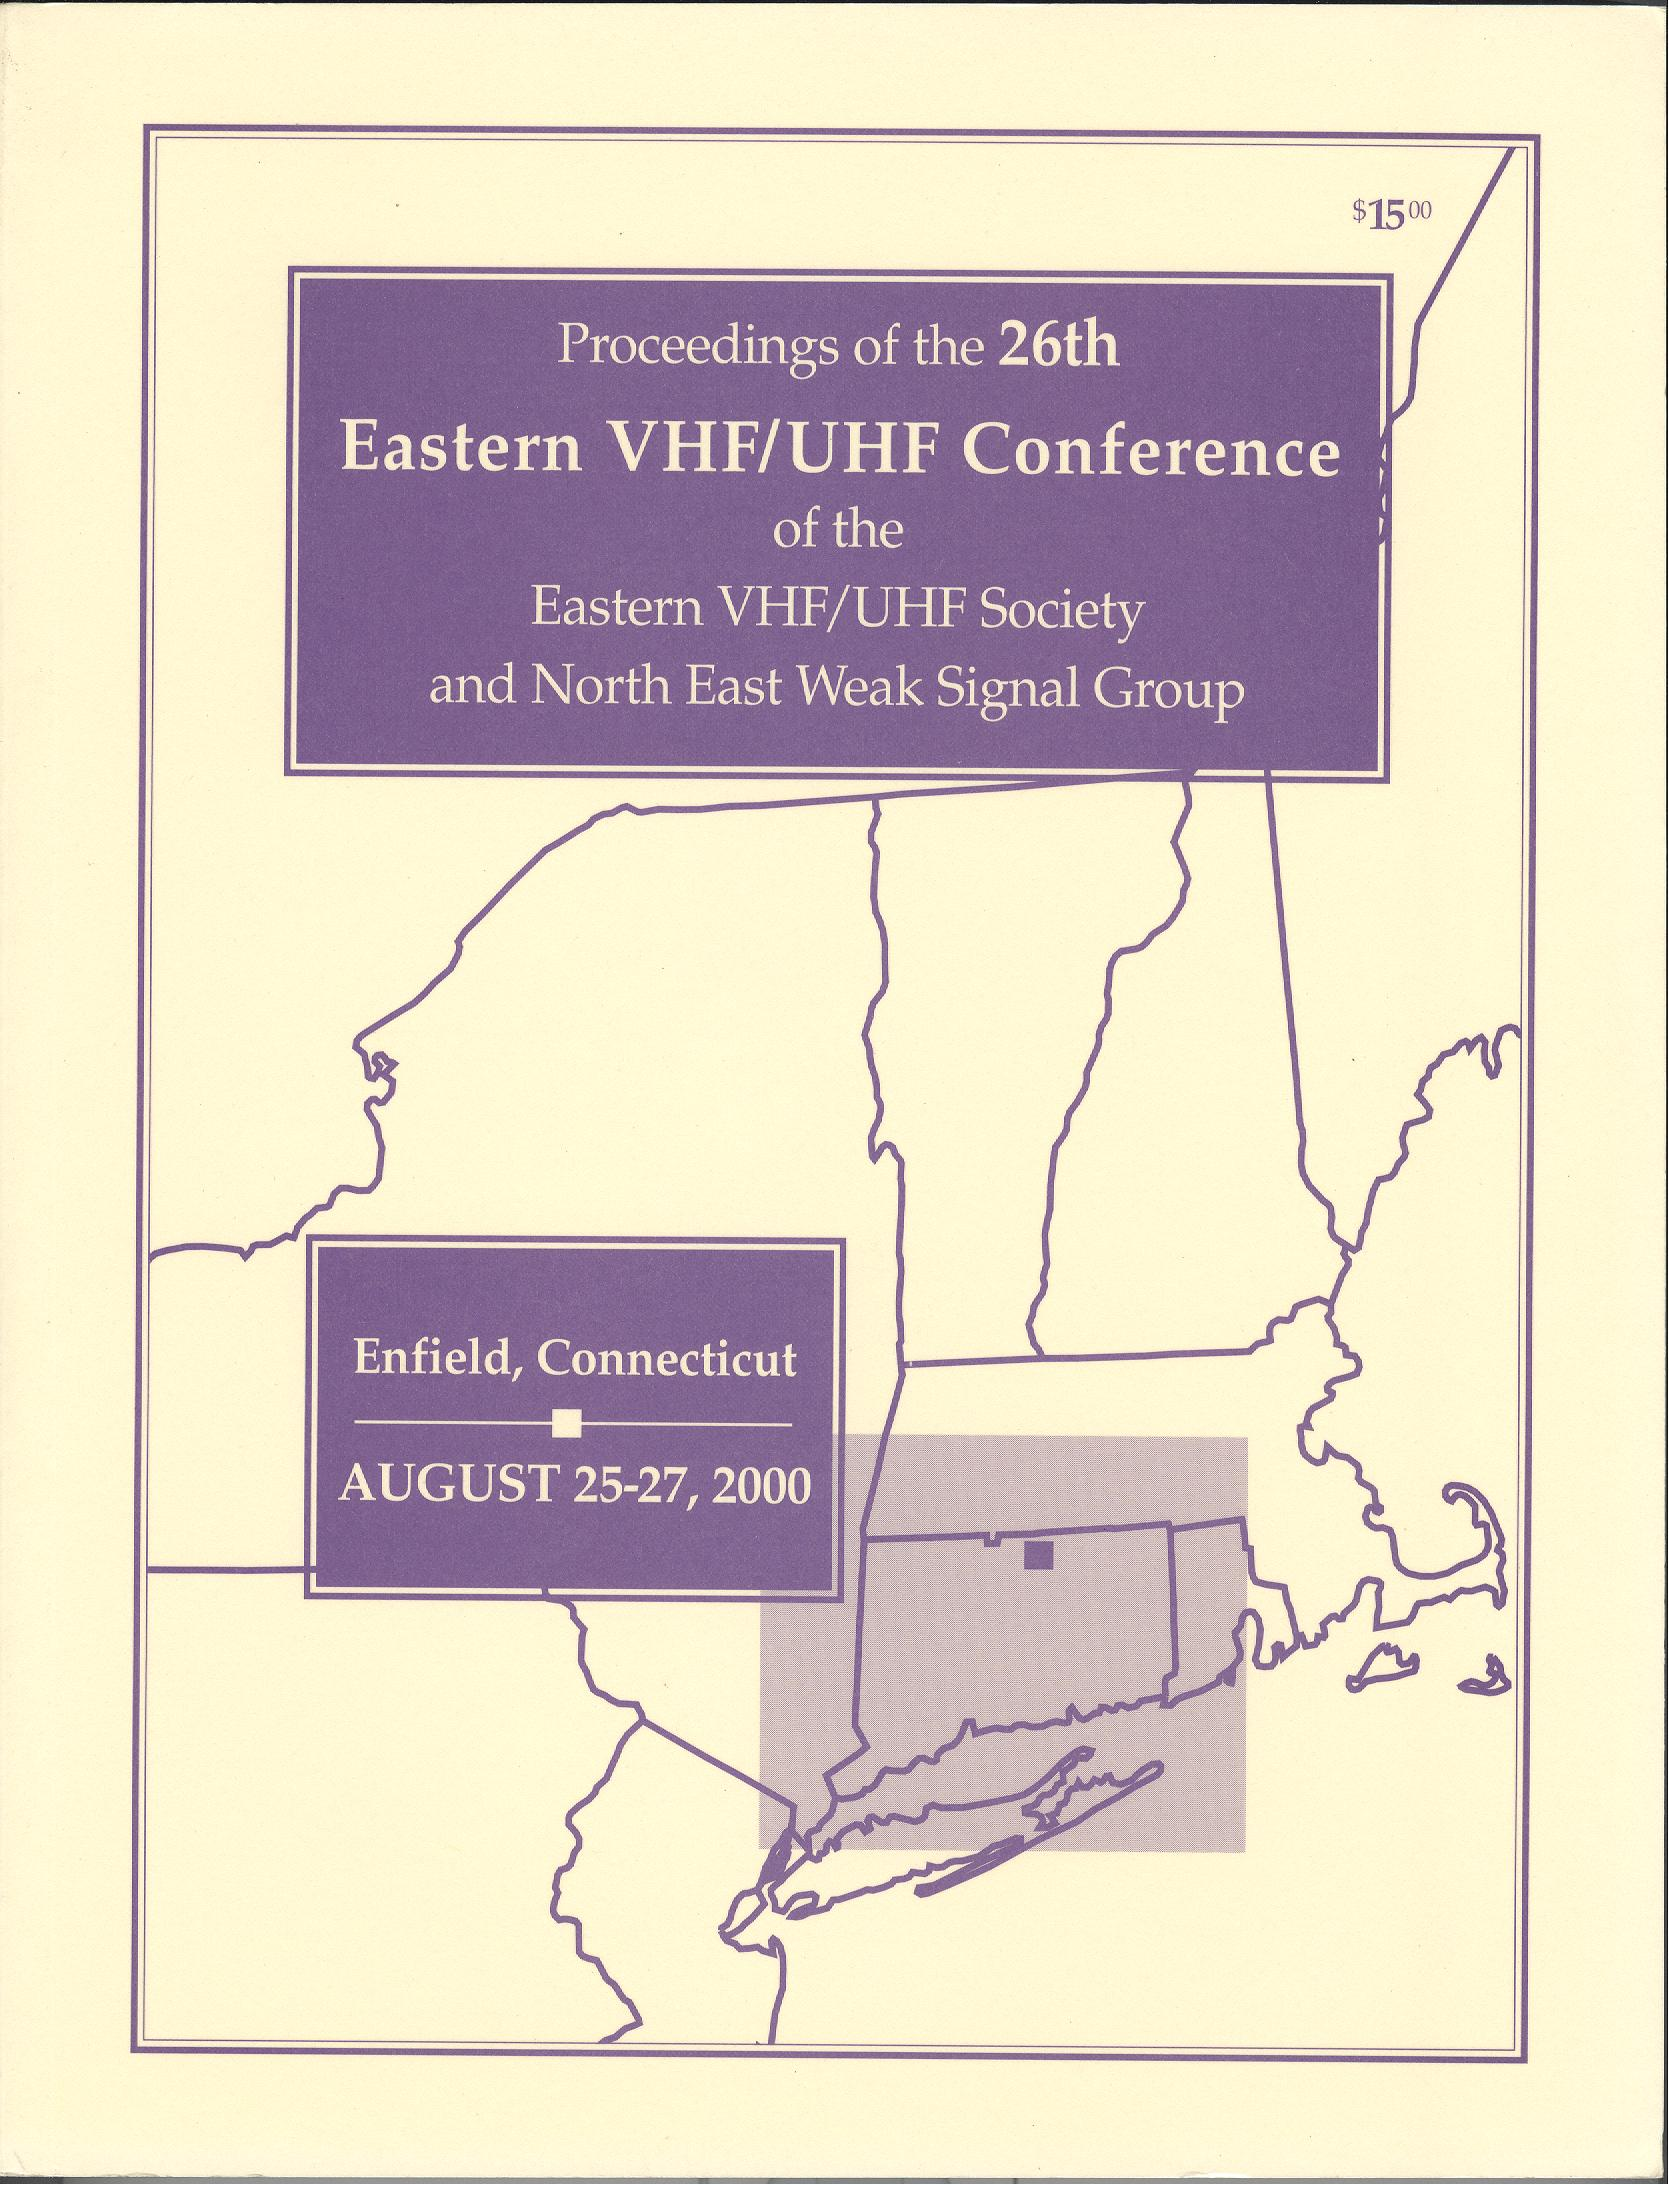 Proceedings of the 26th Eastern VHF/UHF Conference of the EasternVHF/UHF Society and North East Weak Signal Group 2000